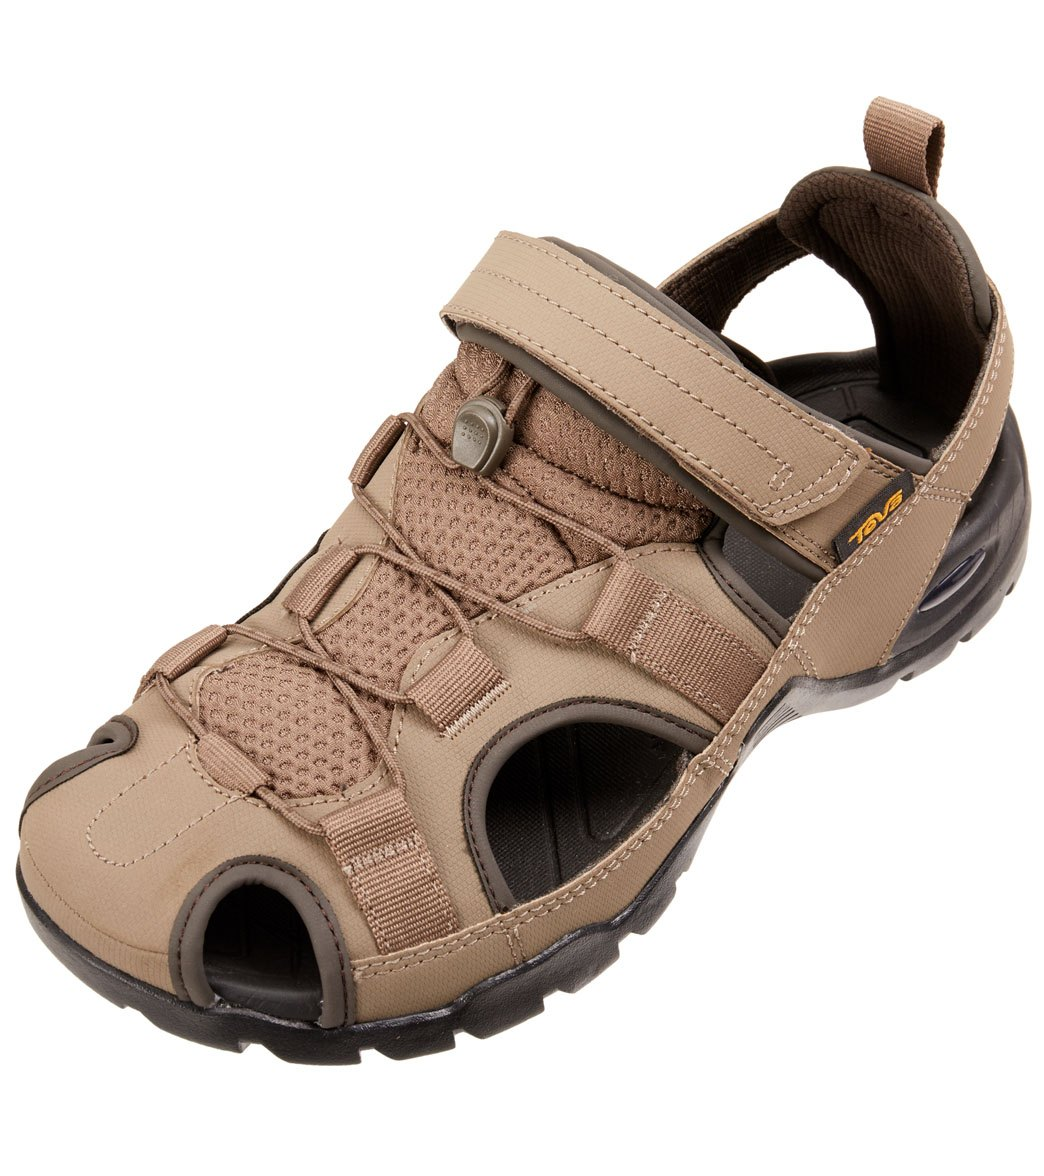 87893839cce7 Teva Men s Forebay 2 Sandal at SwimOutlet.com - Free Shipping